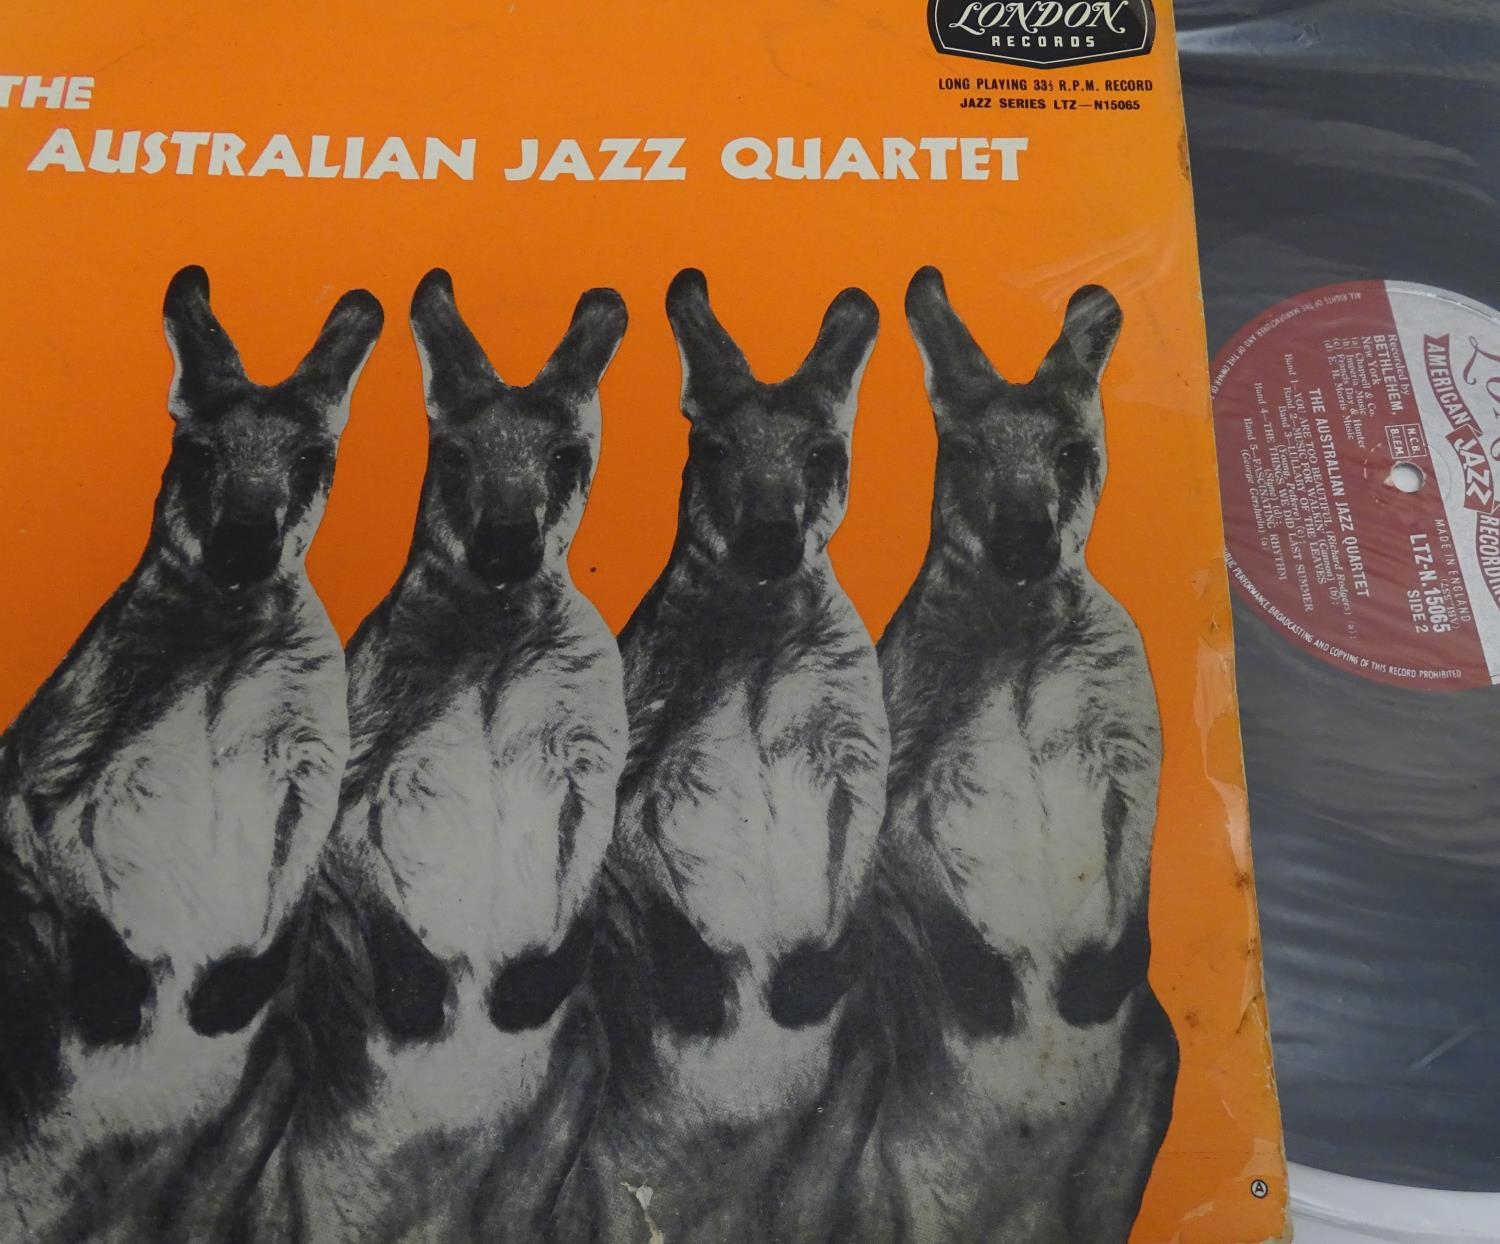 A collection of 20thC 33 rpm Vinyl records / LPs, - Jazz, comprising: The Eddie Condon Floor Show 2, - Image 19 of 19